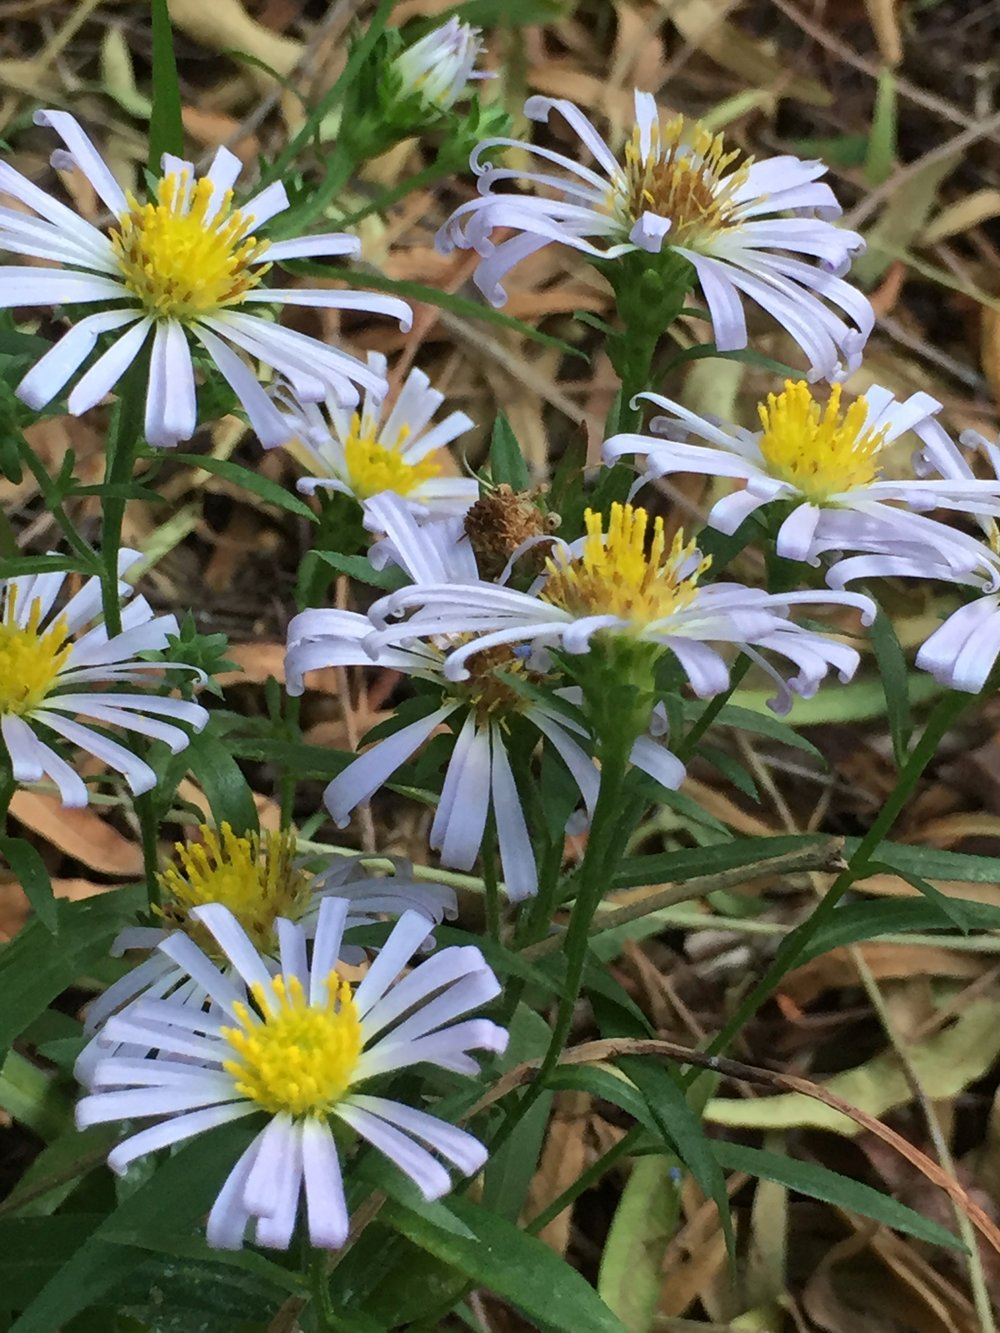 Aster chilensis,or California Aster